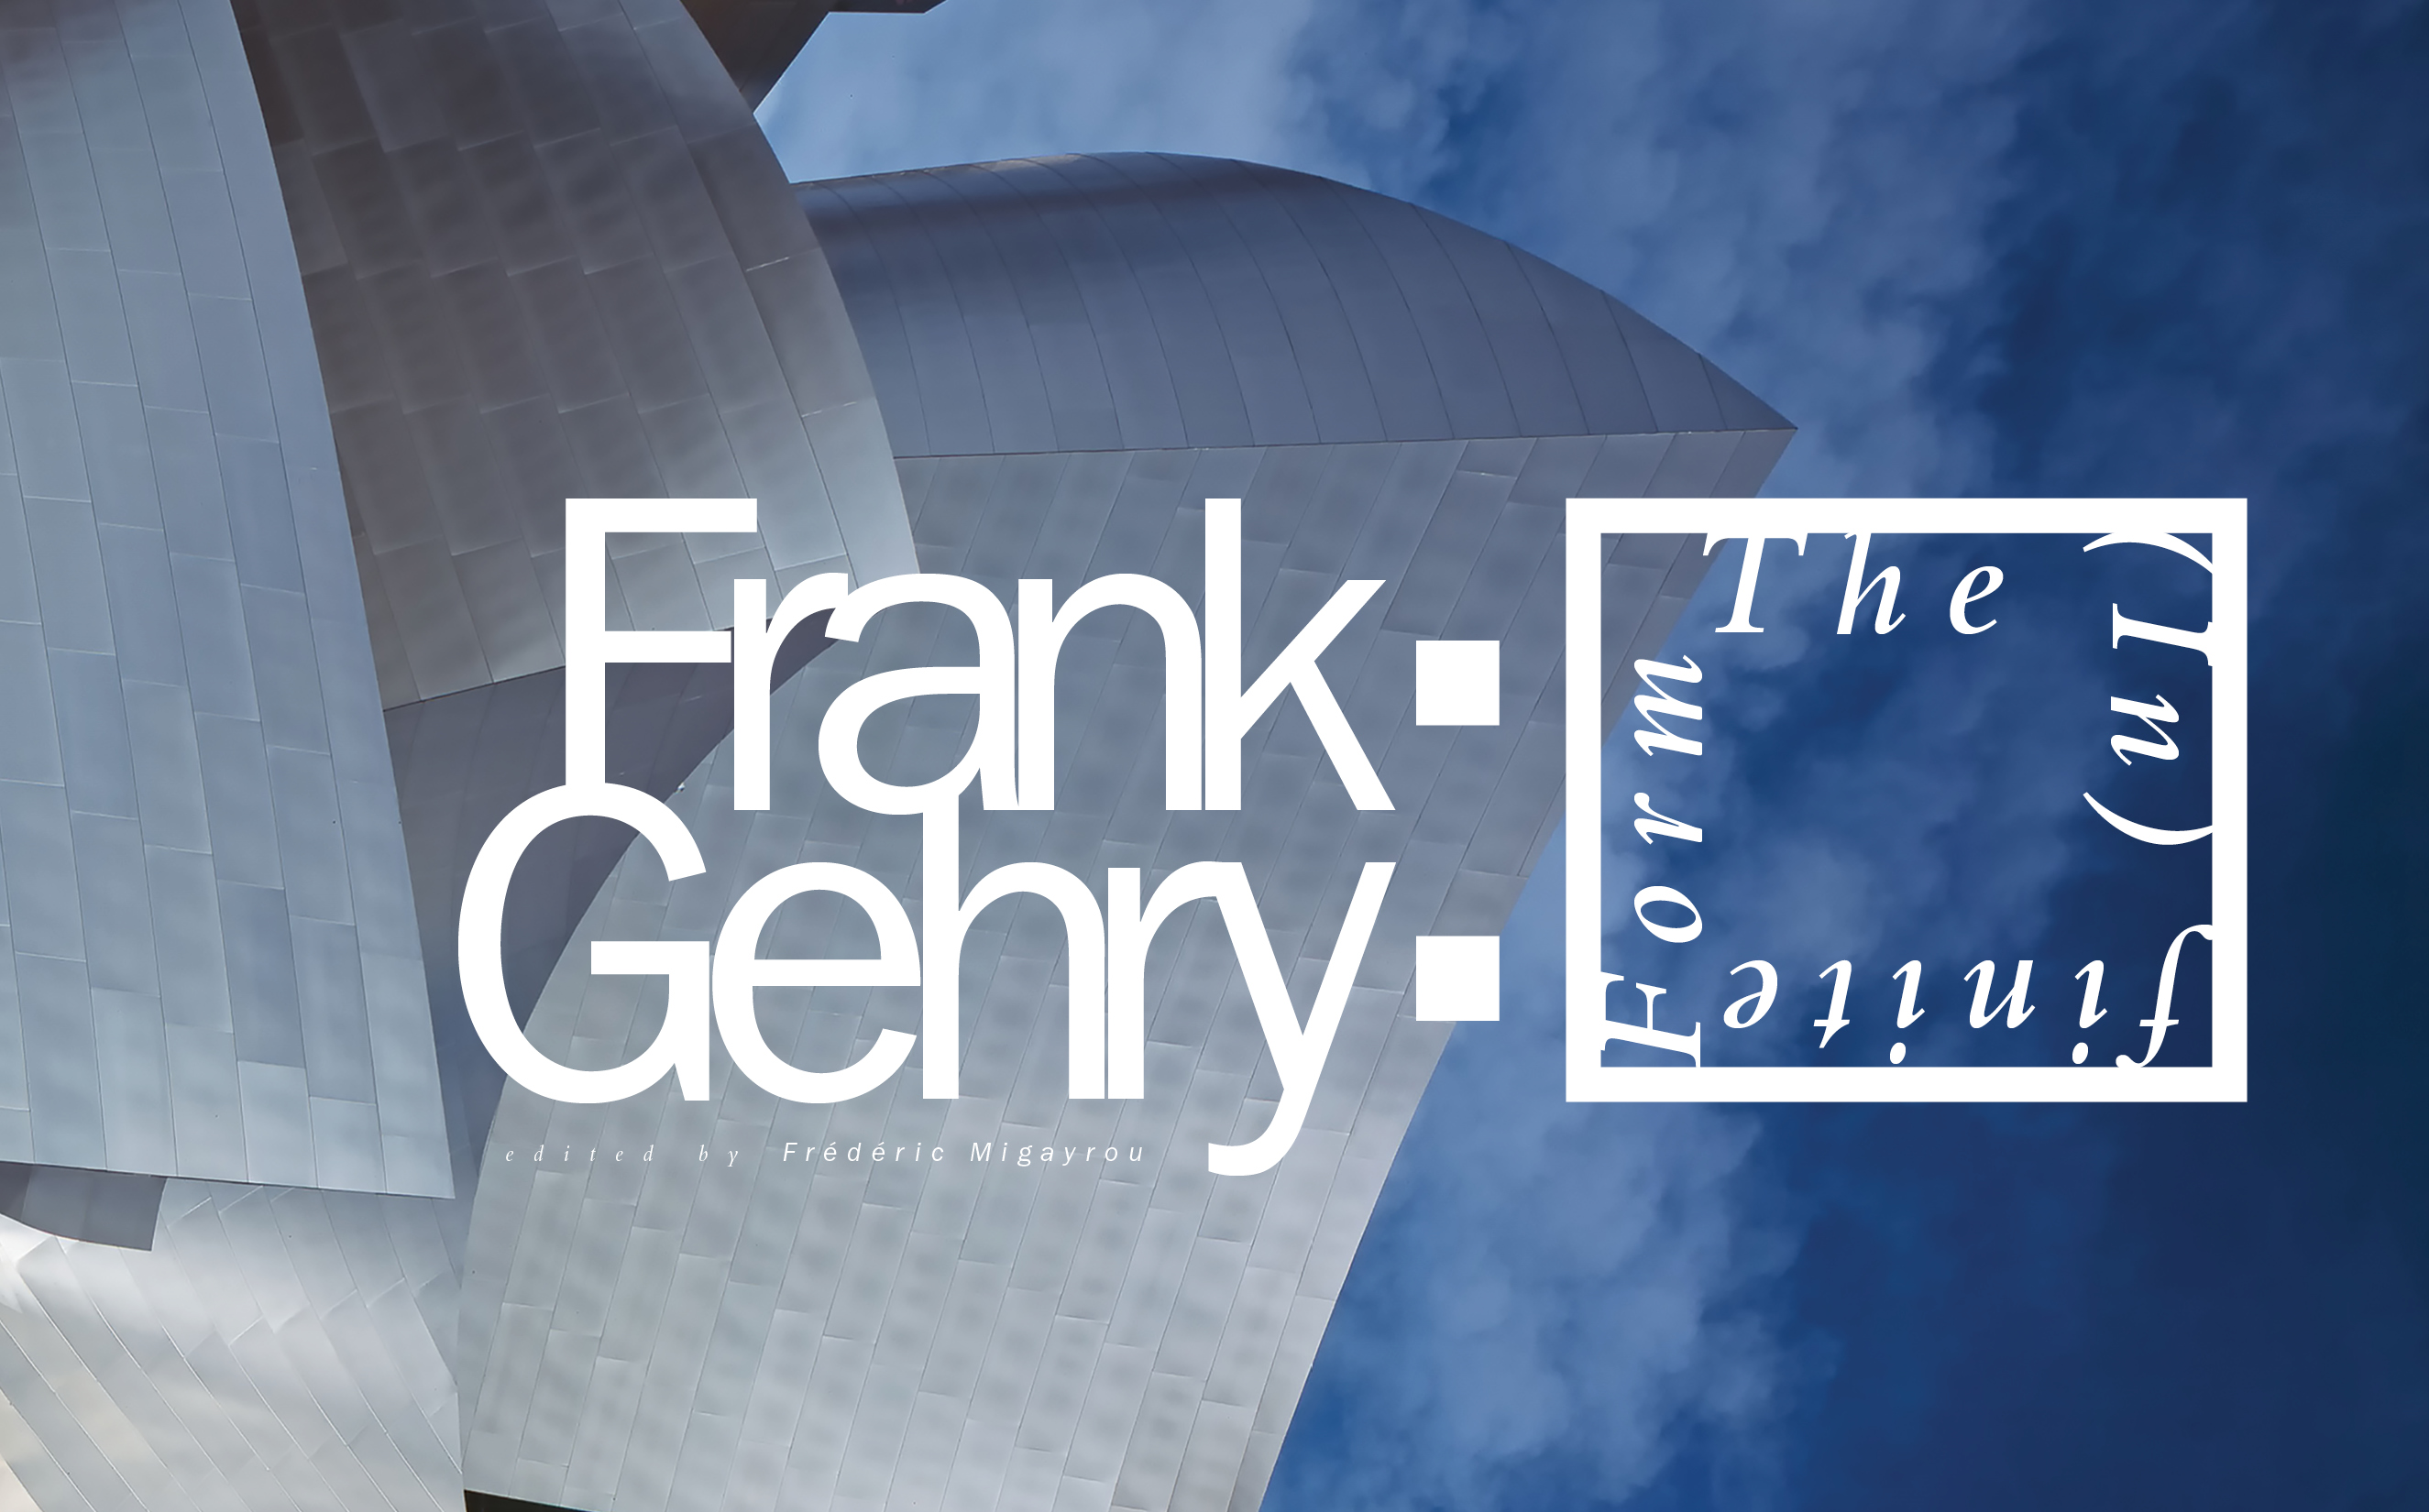 Frank Gehry: The (In)finite Form